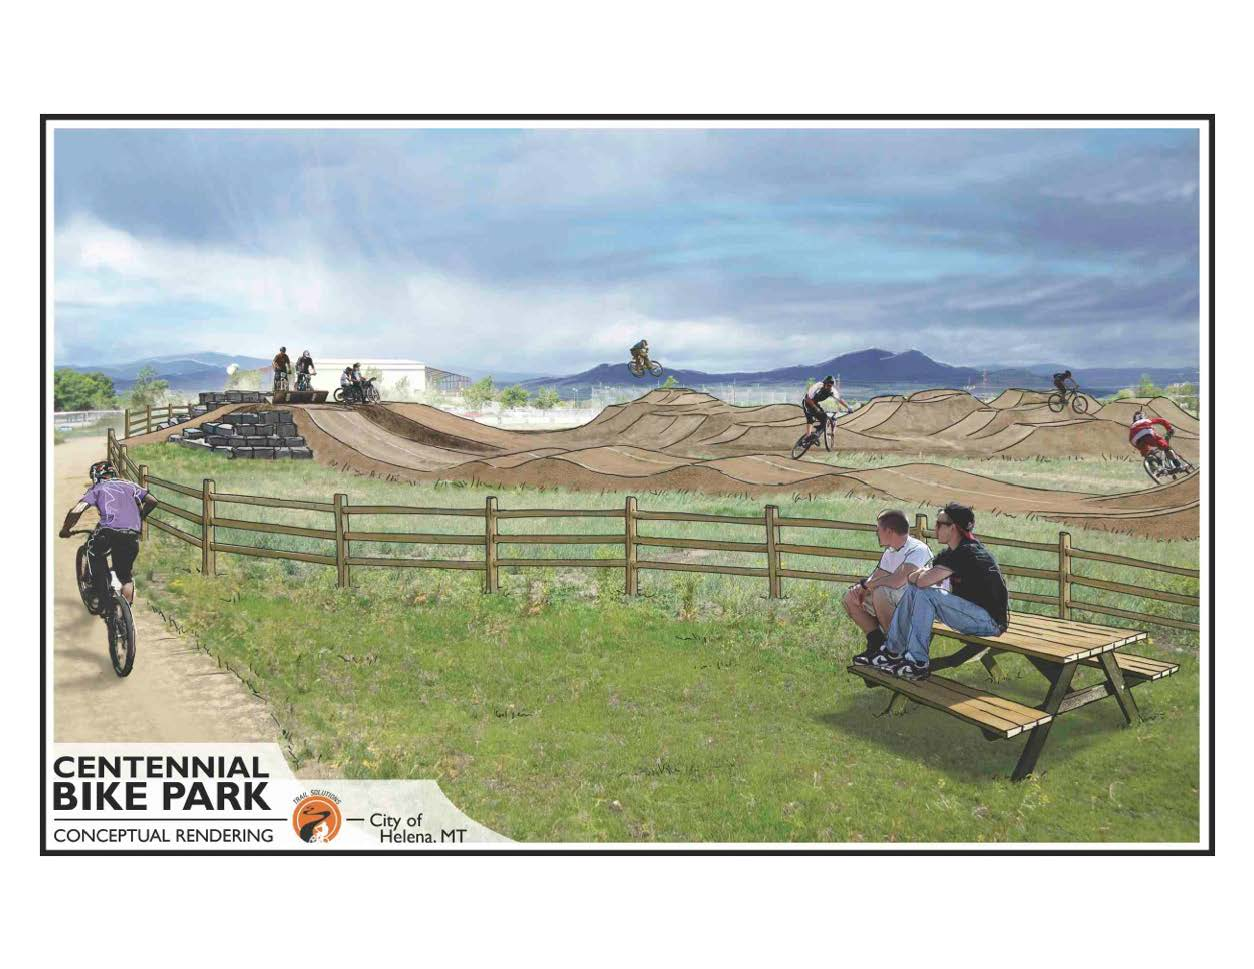 Centennial Bike Park example